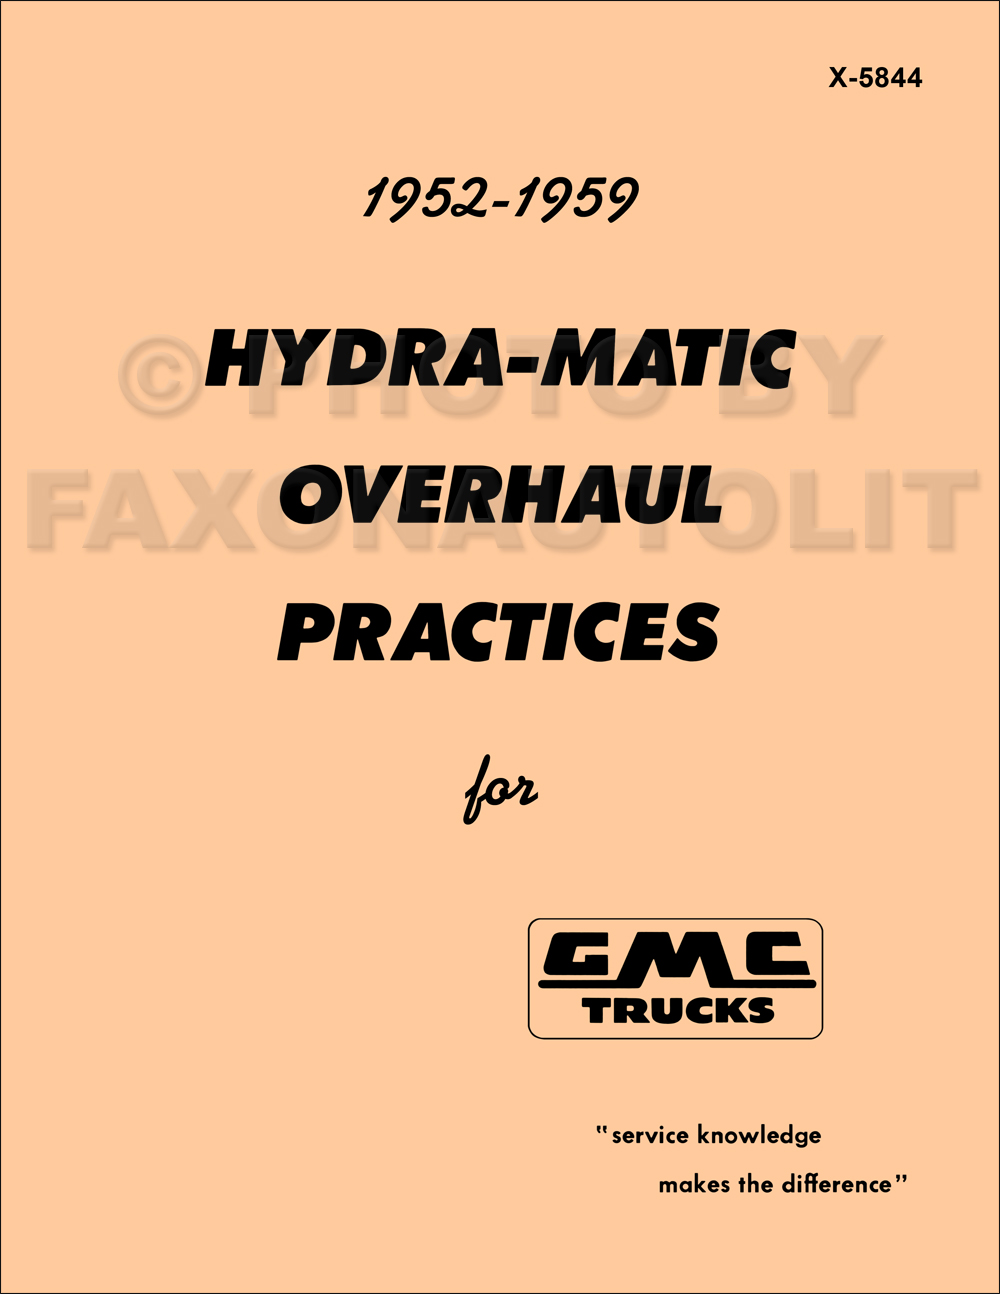 1952 Parts 1988 Ford F150 49li Need Simple Wiring Diagramstarter 1959 Gmc Truck Hydra Matic Transmission Overhaul Manual Catalog Reprint